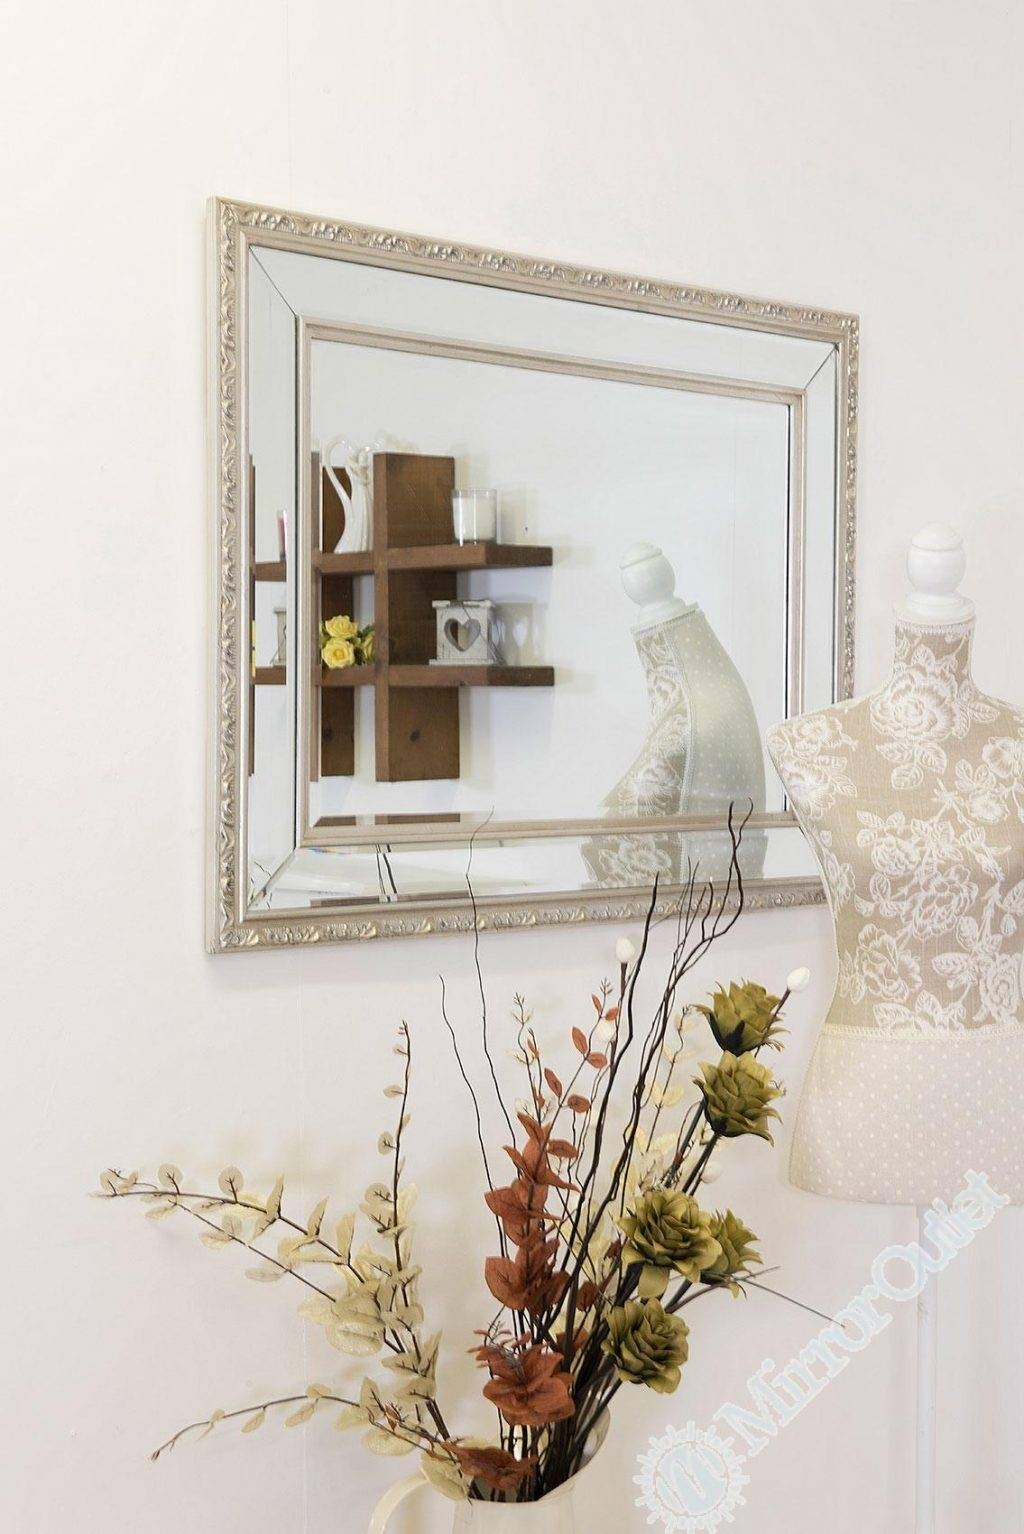 Large Glass Bevelled Wall Mirror 115 Cool Ideas For Alison Black Within Large Glass Bevelled Wall Mirrors (View 12 of 25)